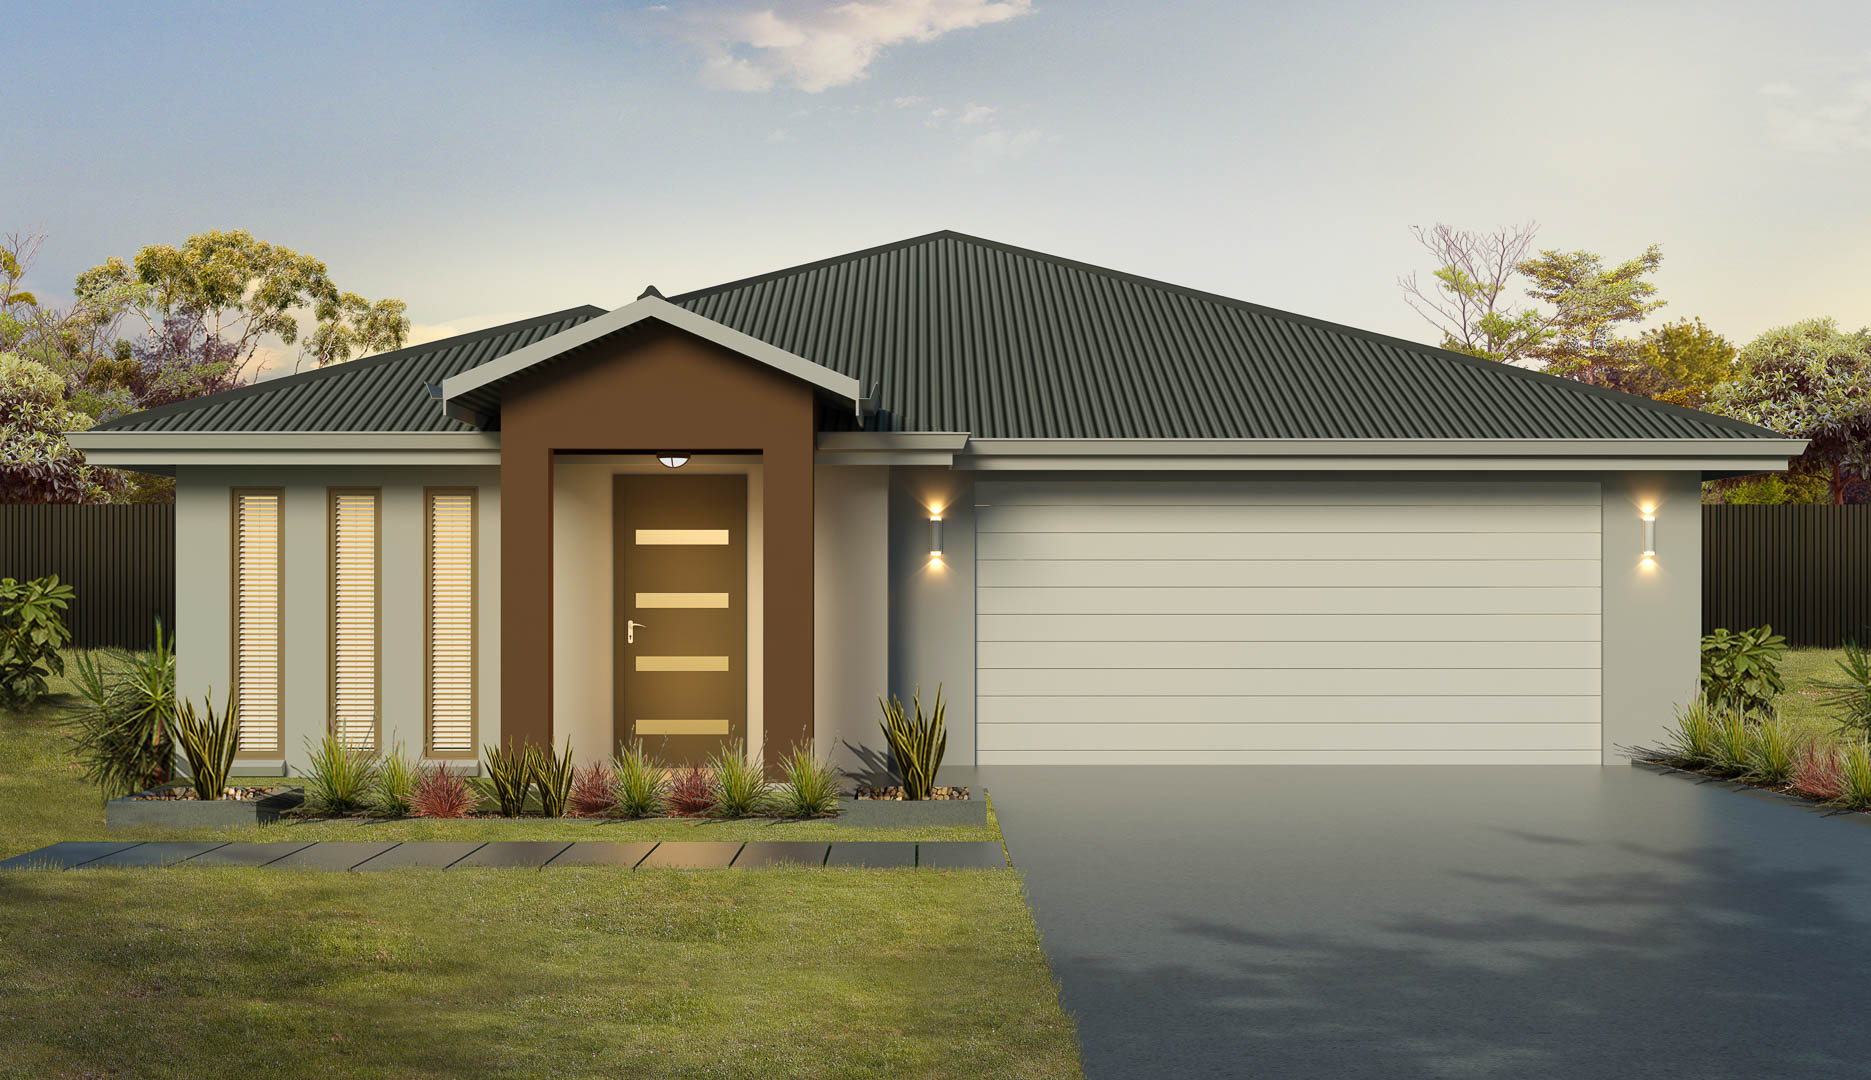 Panel homes australia a great place to call home for Concrete panel house